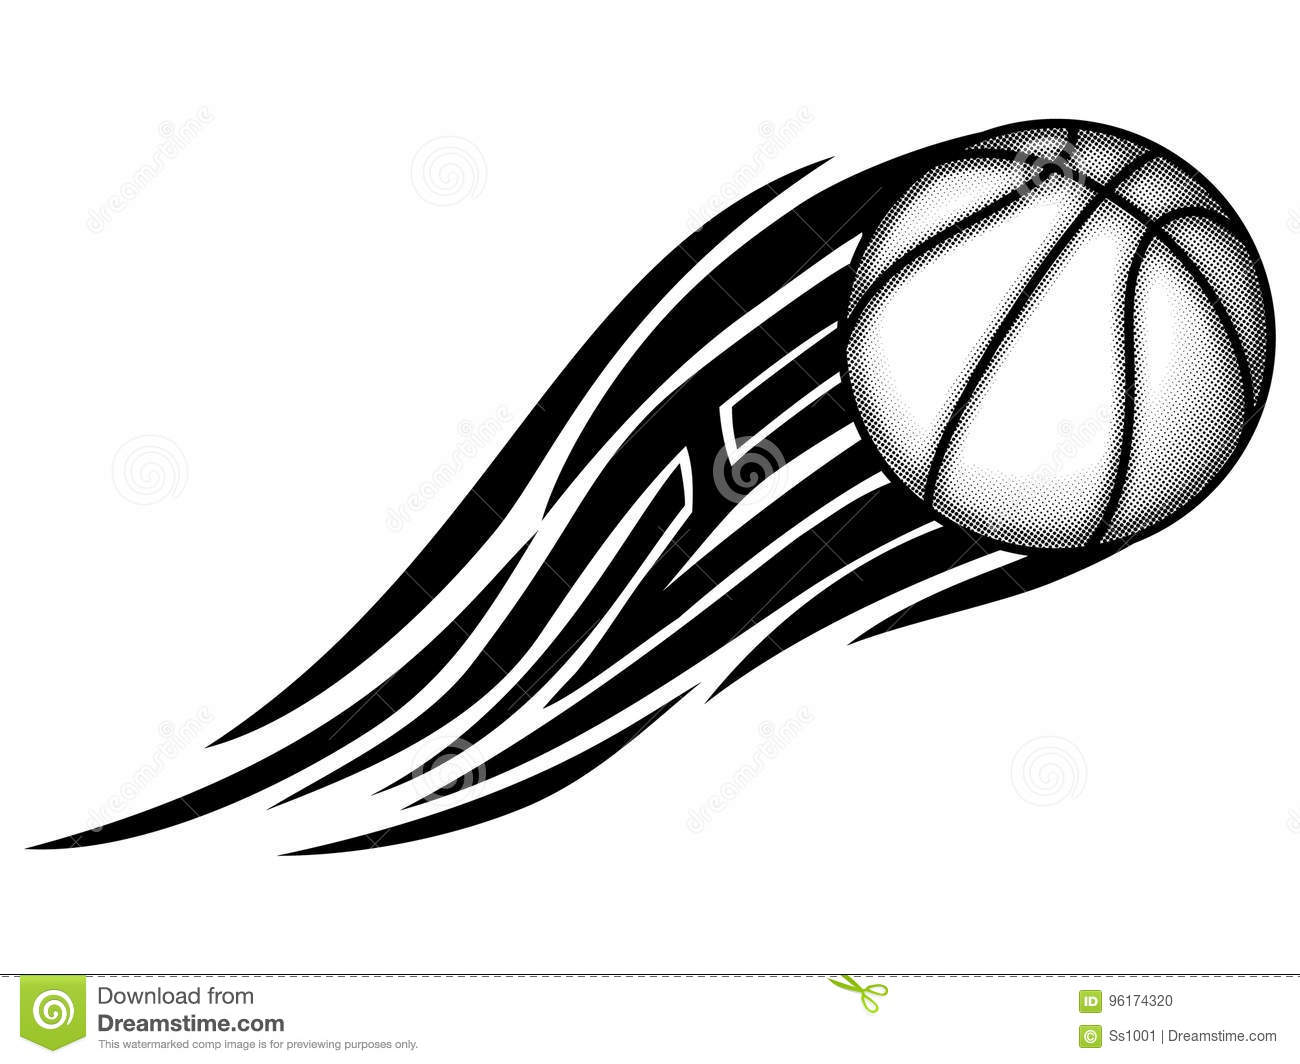 Stock Illustration Volleyball Tribal Abstract Vector: Basketball Tribal Stock Vector. Illustration Of College